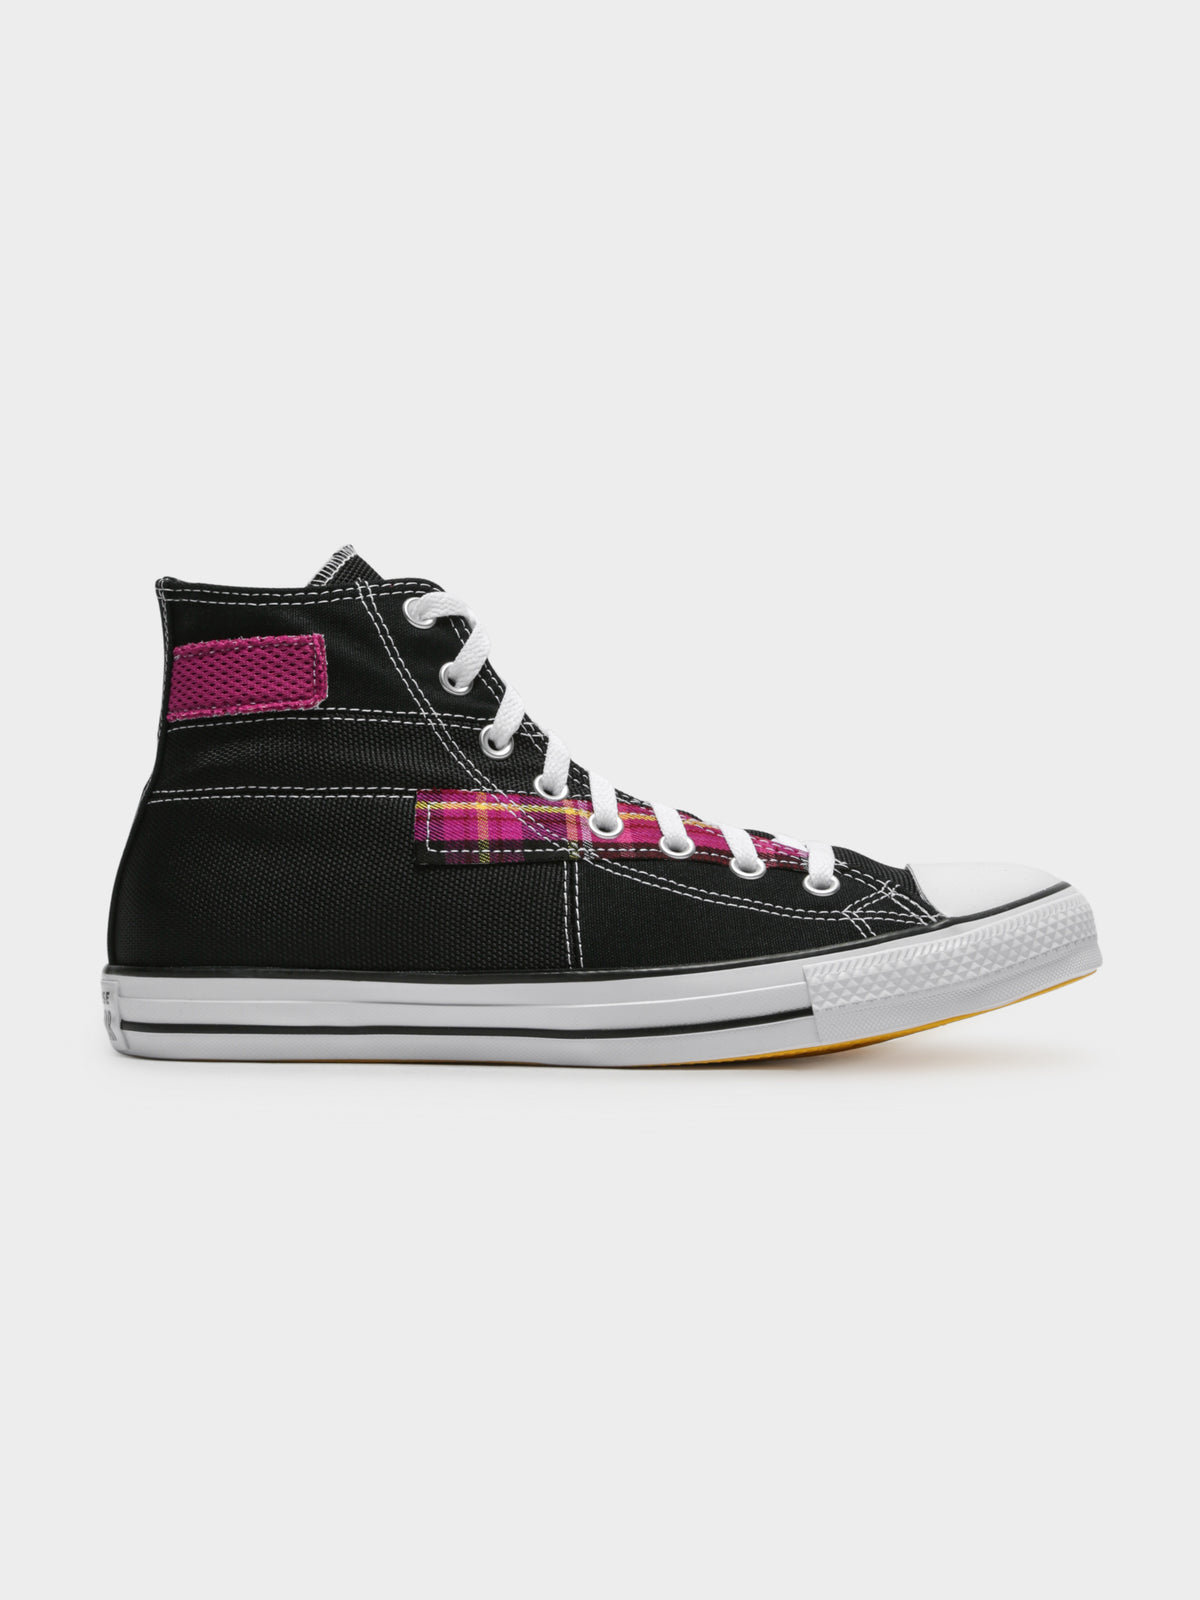 Unisex Converse Chuck Taylor All Star Patchwork High Top Sneakers in Black